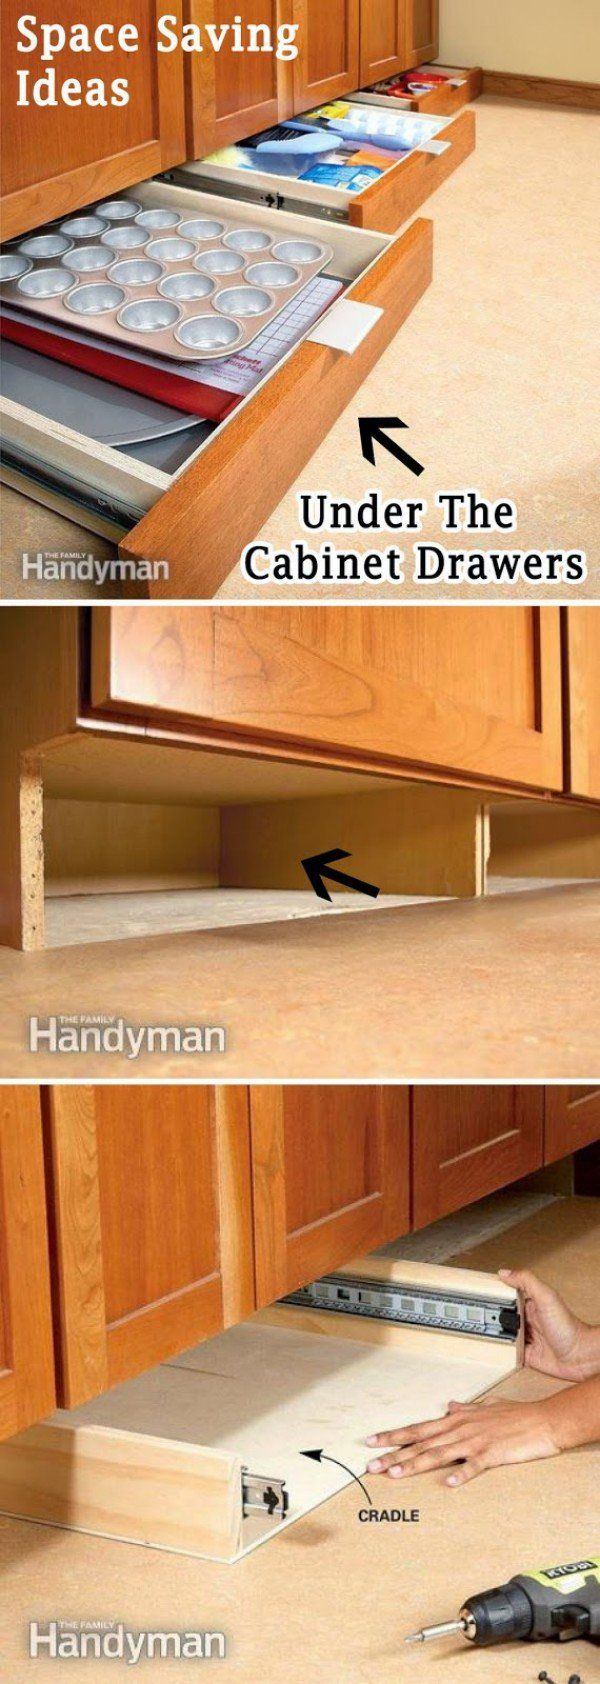 45 amazingly clever storage and organization ideas you must try at 45 amazingly clever storage and organization ideas you must try at home solutioingenieria Gallery